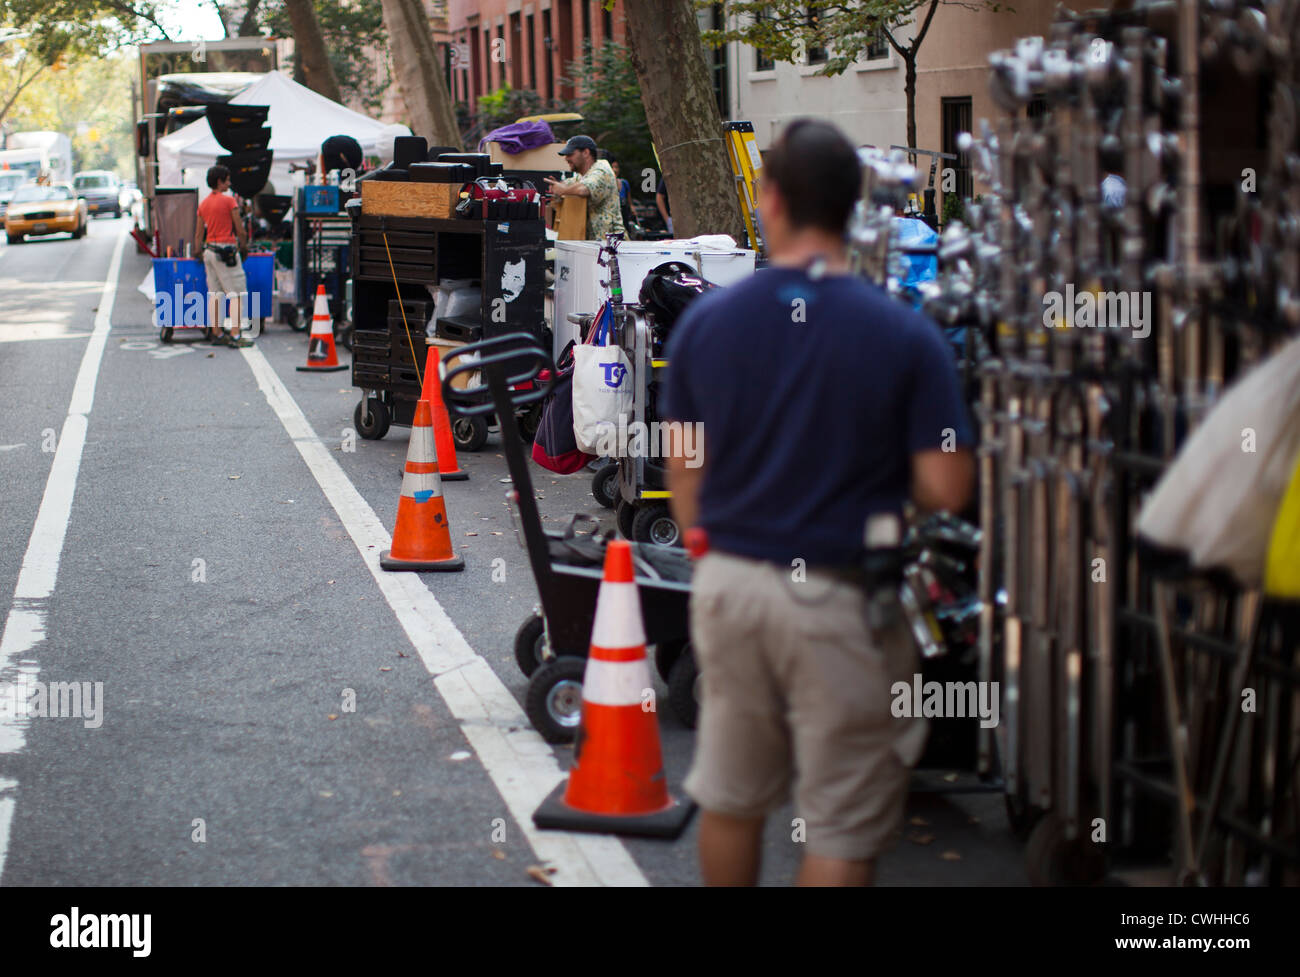 Workers help construct a movie set for 'Zero Hour,' an ABC-TV drama show in Brooklyn Heights, New York. - Stock Image